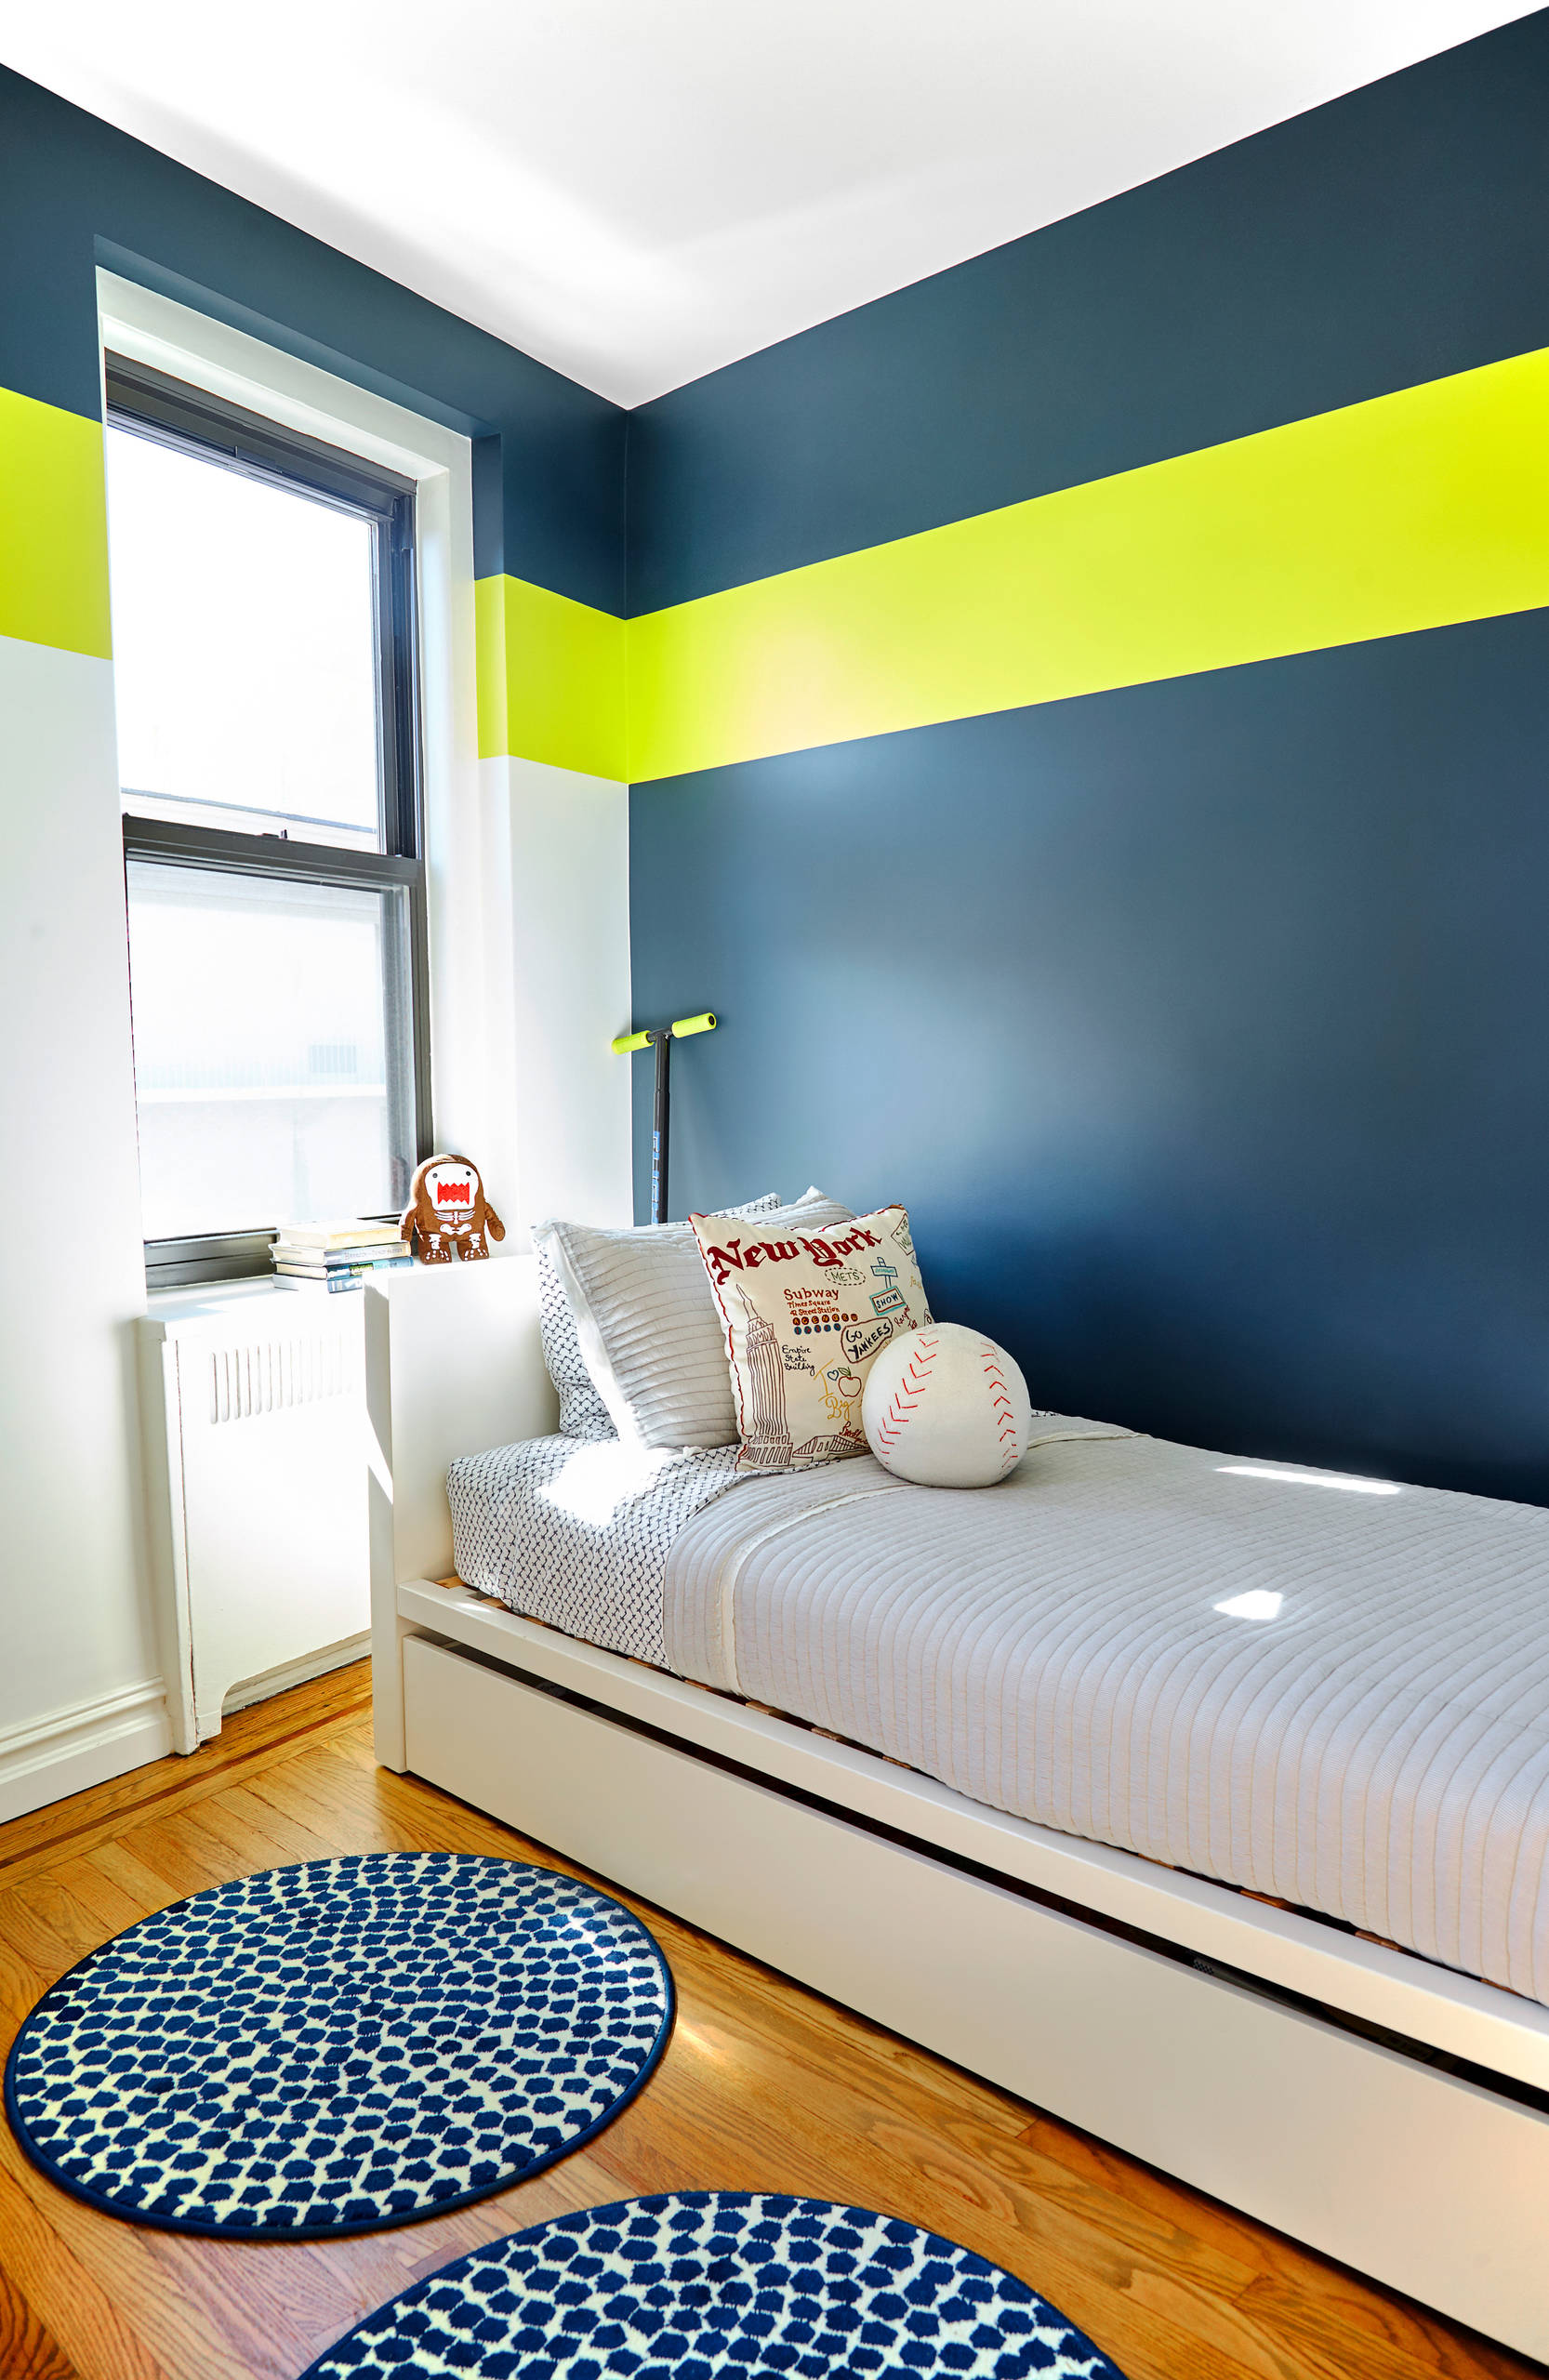 75 Beautiful Kids Room Pictures Ideas Color Blue April 2021 Houzz